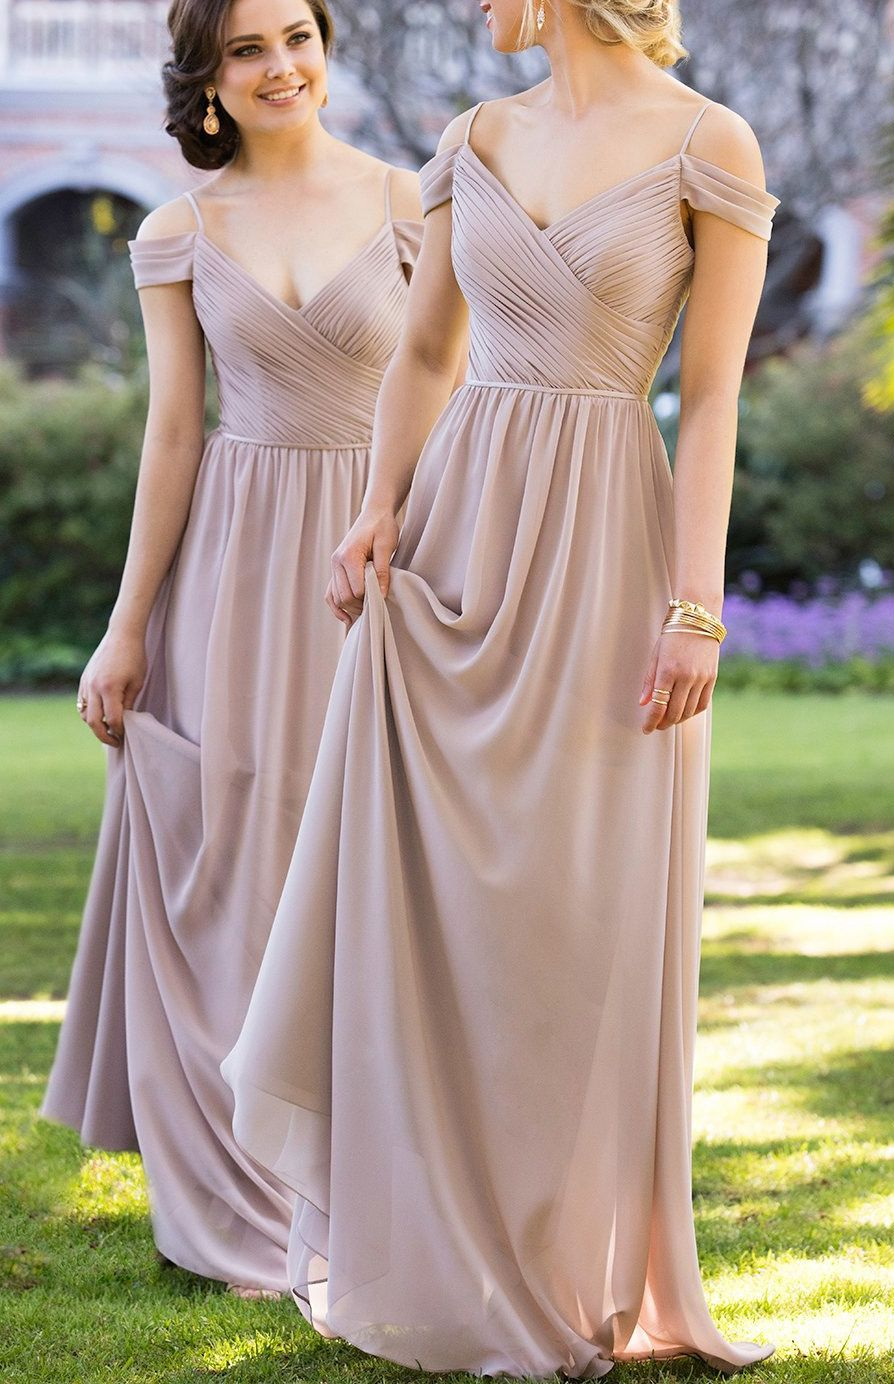 Straps bridesmaid dresses grey long bridesmaid dresses sexy straps bridesmaid dresses grey long bridesmaid dresses sexy cheap bridesmaid dresses spaghetti straps ruffles long bridesmaid dresses wf02g41 840 ombrellifo Image collections